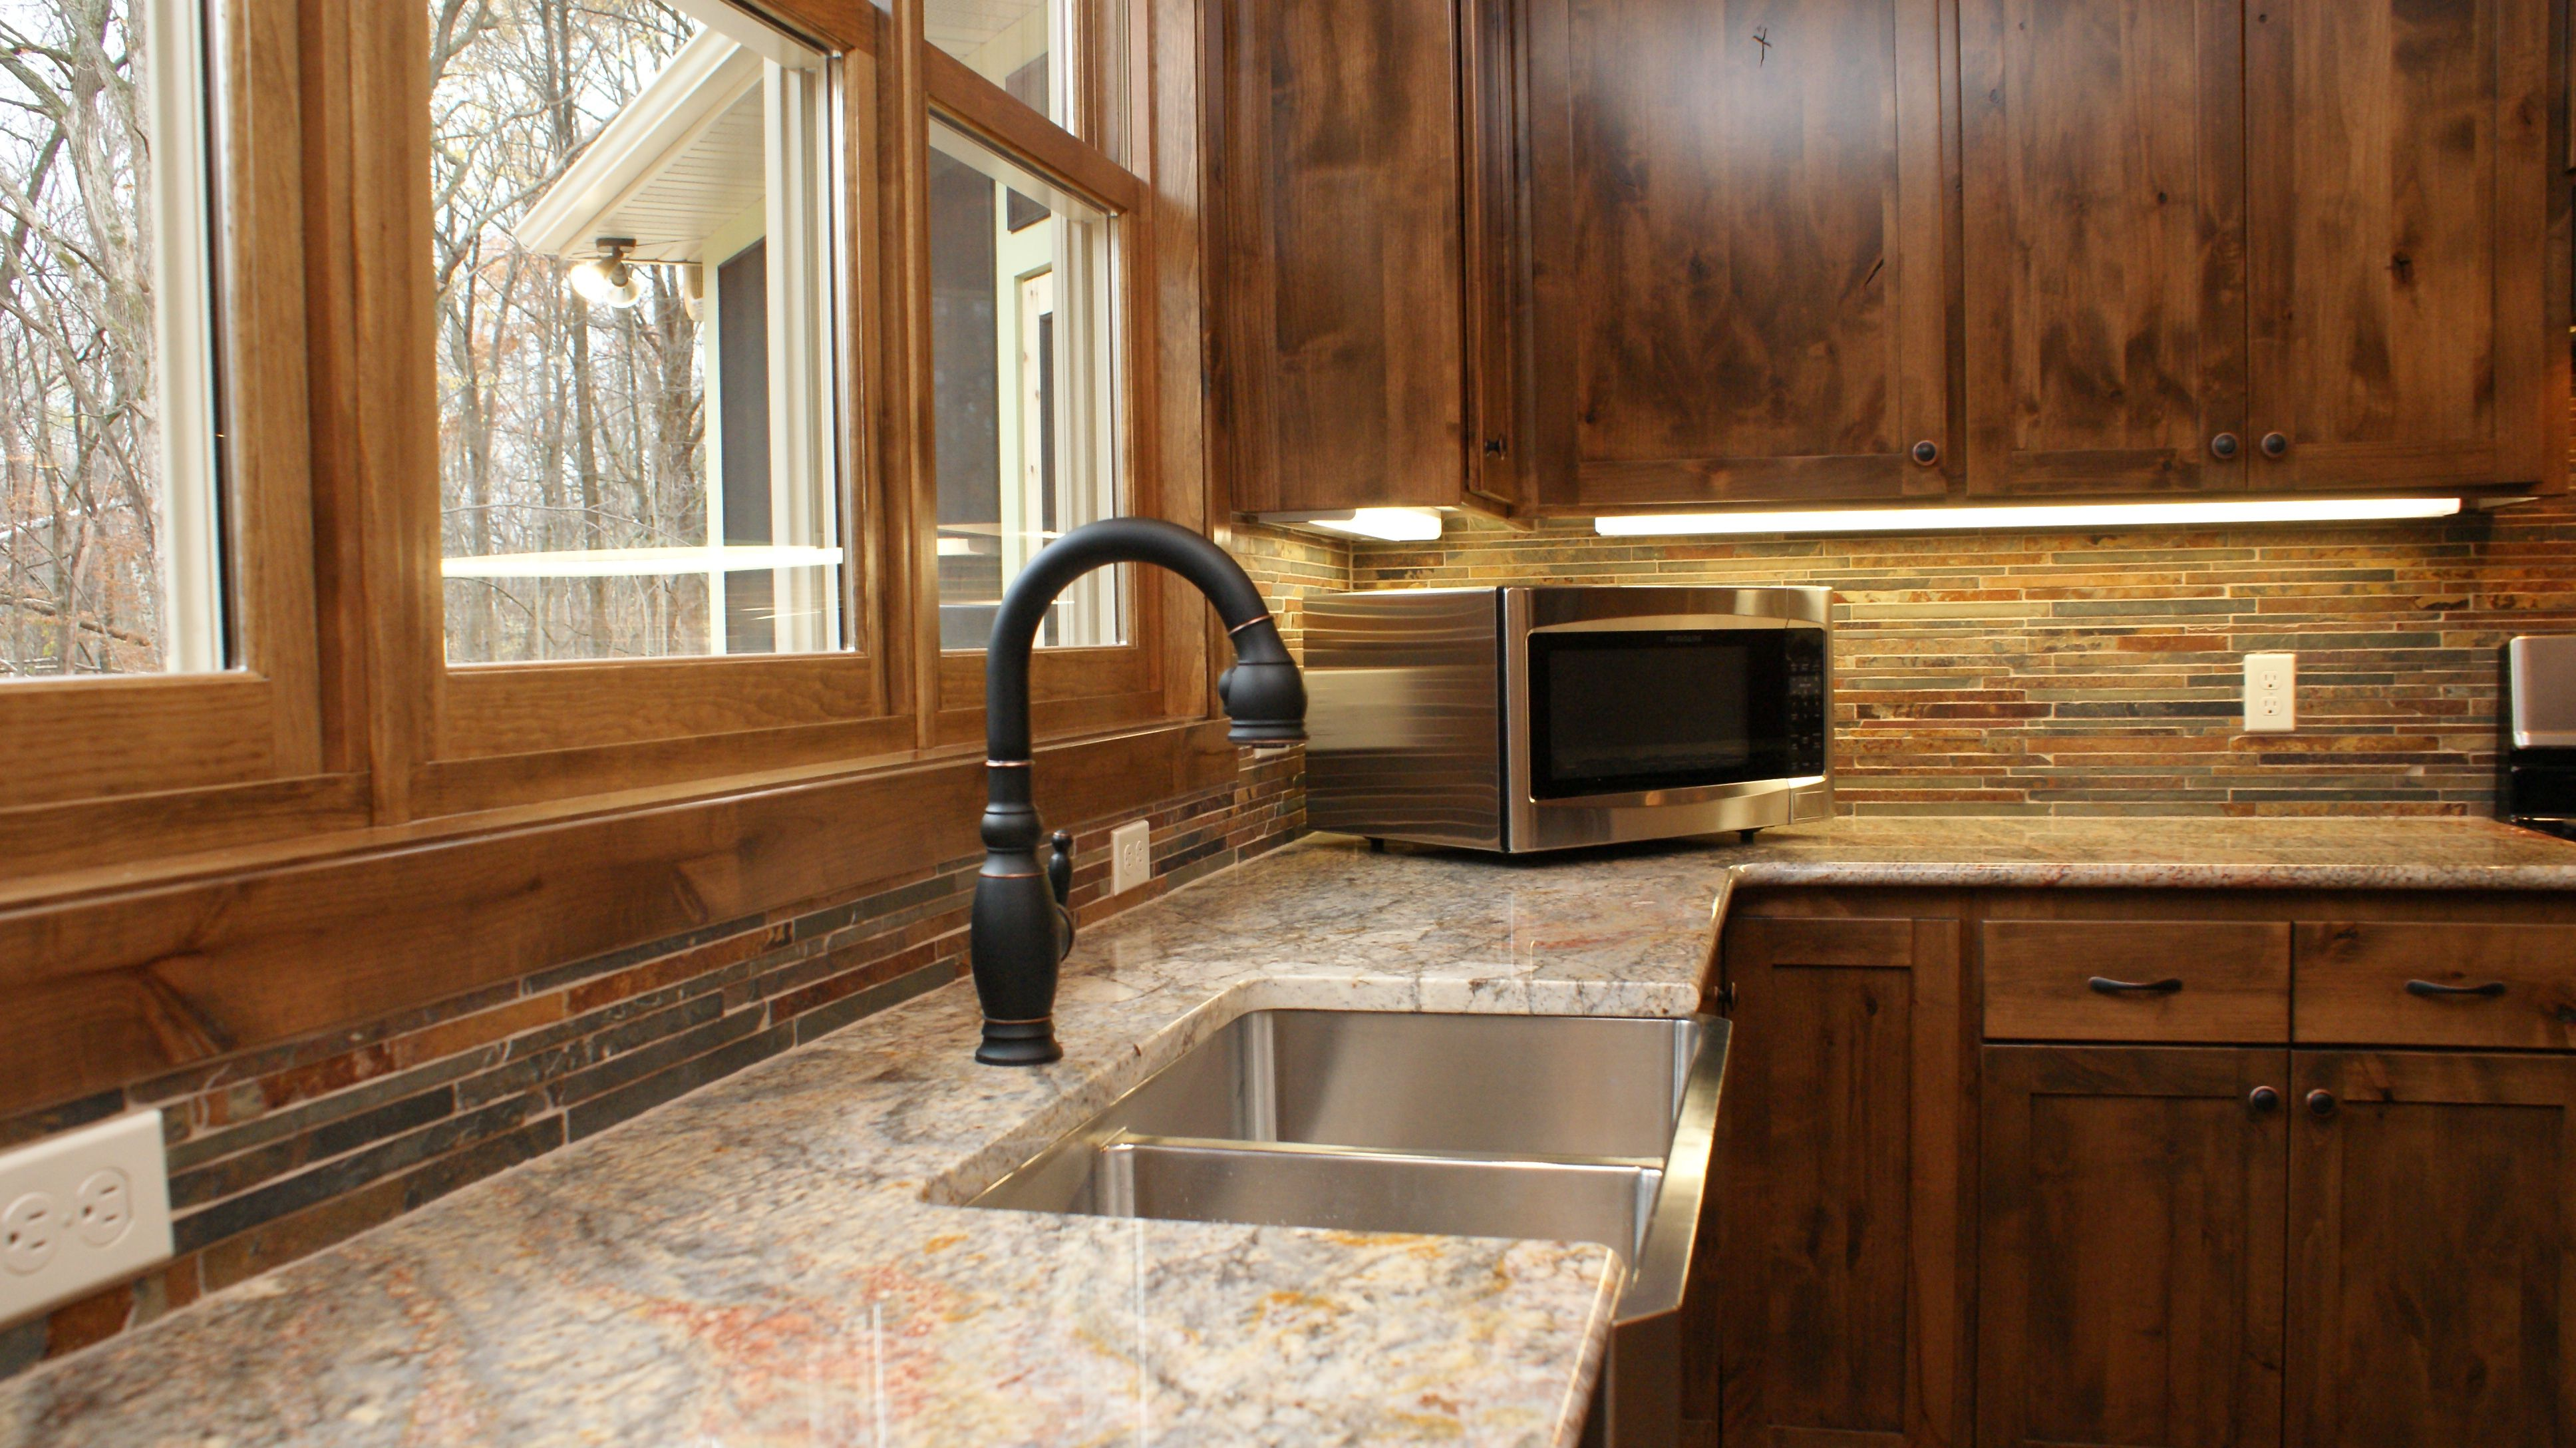 Granite Countertops With Backsplash Ideas Part - 16: Backsplashes For Granite Countertops | ... Marvelous Look To Your Kitchen  With A Murano